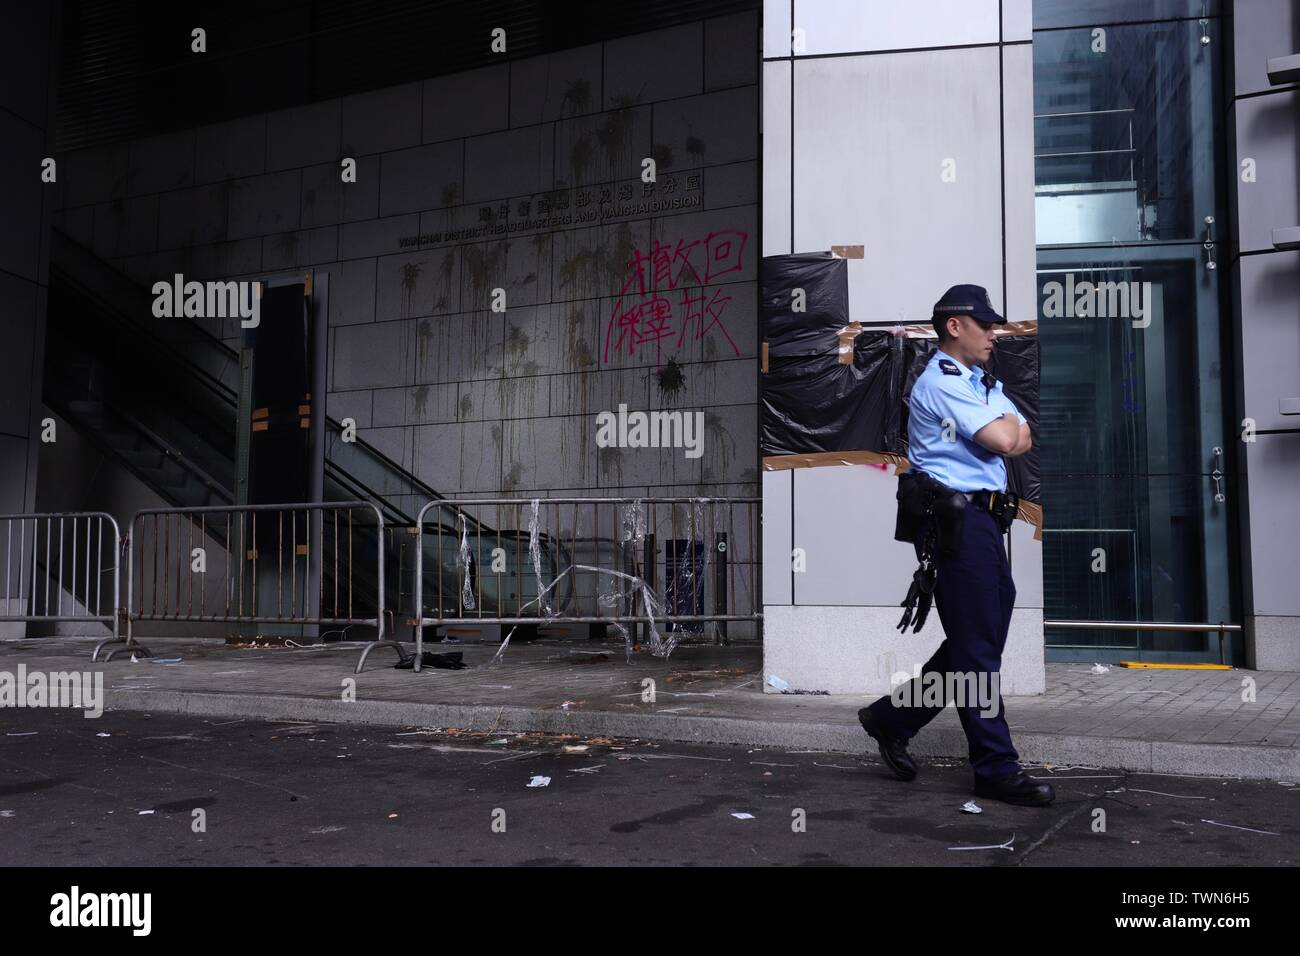 Hong Kong. 22nd June, 2019. Policeman walk path trashed up Hong Kong Police Headquarters in the early morning after thousand of demonstrators surrounded Police Headquarter condemning police brutality, demanding Police Chief Lo Wai-chung to offer formal apologies to the public. So far Lo have not responded to the public outcry.June-22, 2019 Hong Kong.ZUMA/Liau Chung-ren Credit: Liau Chung-ren/ZUMA Wire/Alamy Live News - Stock Image